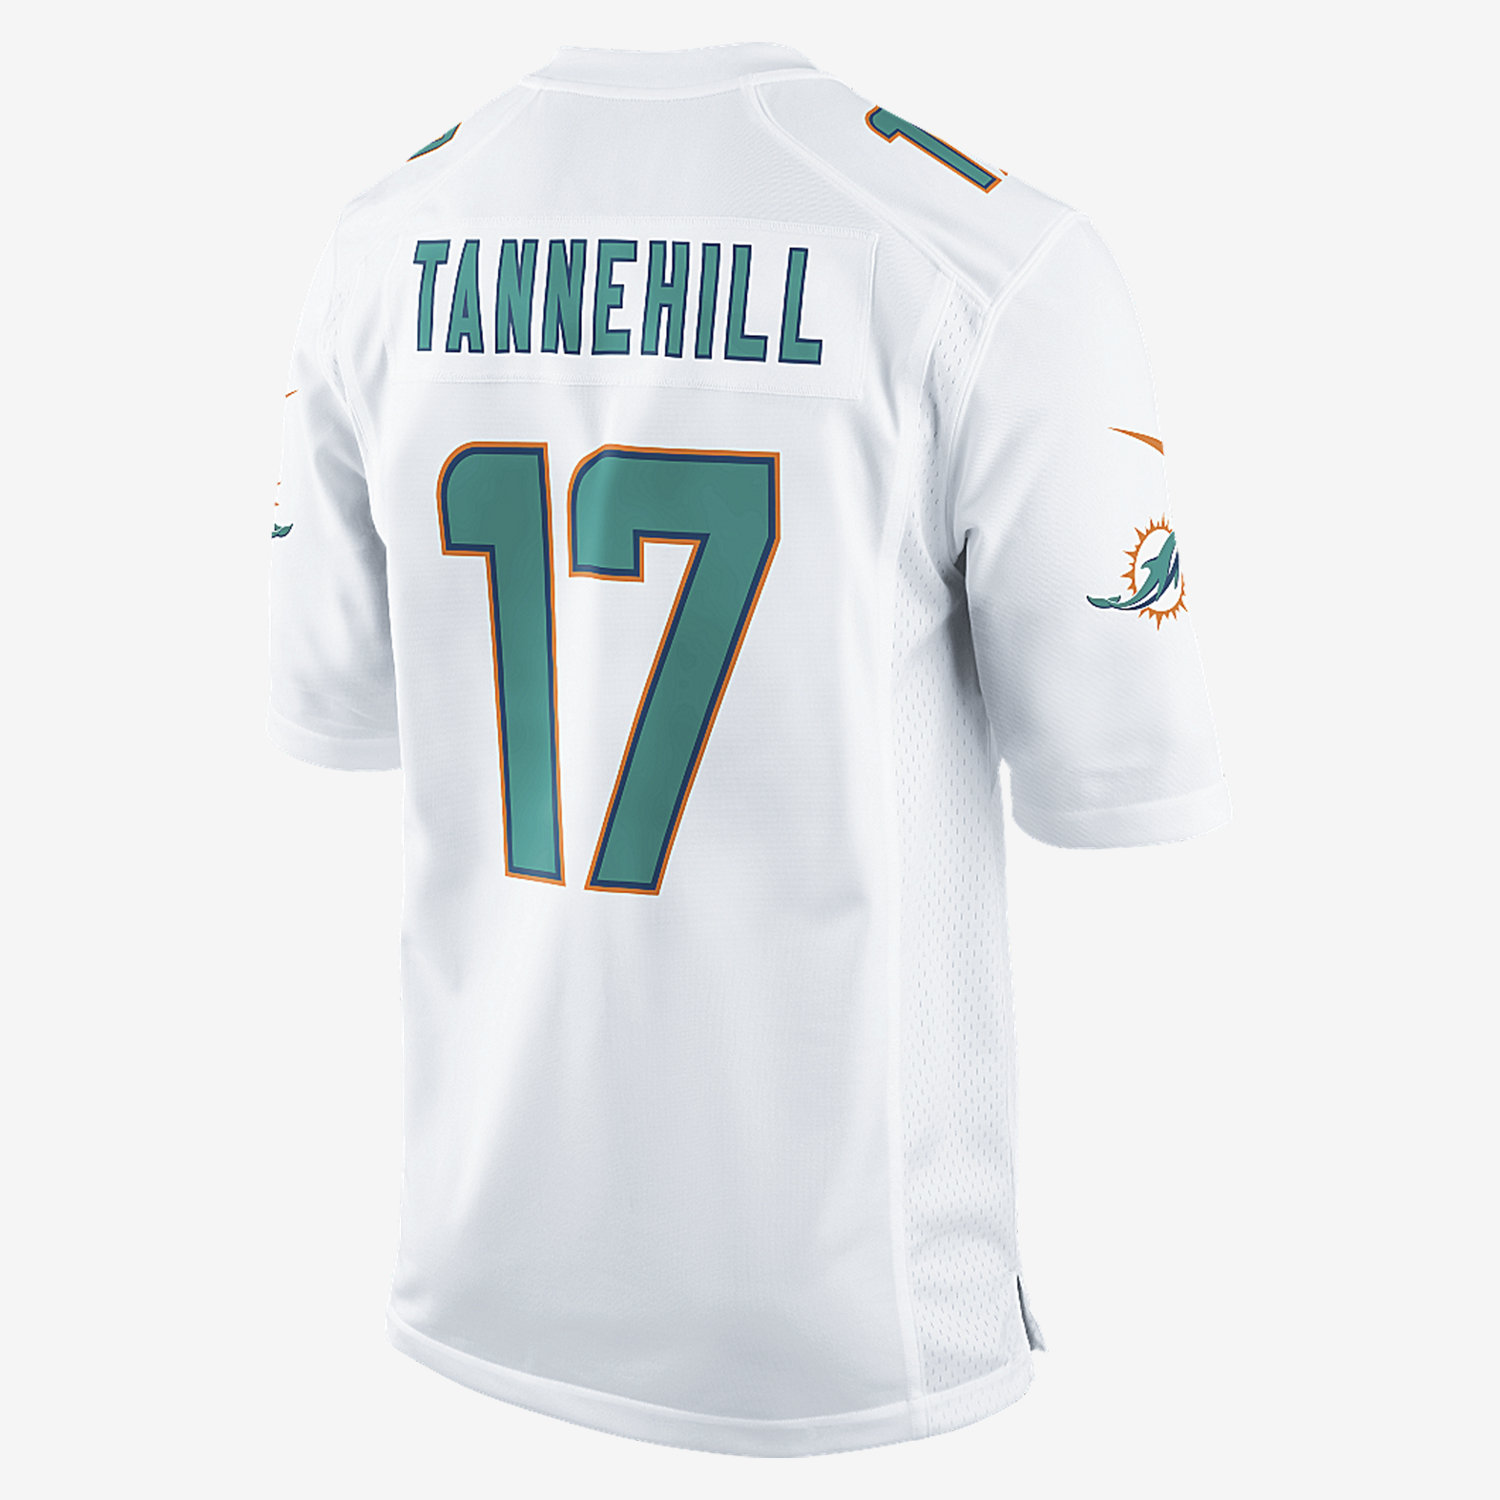 NFL Jersey's Men's Miami Dolphins Nike White Custom Elite Jersey